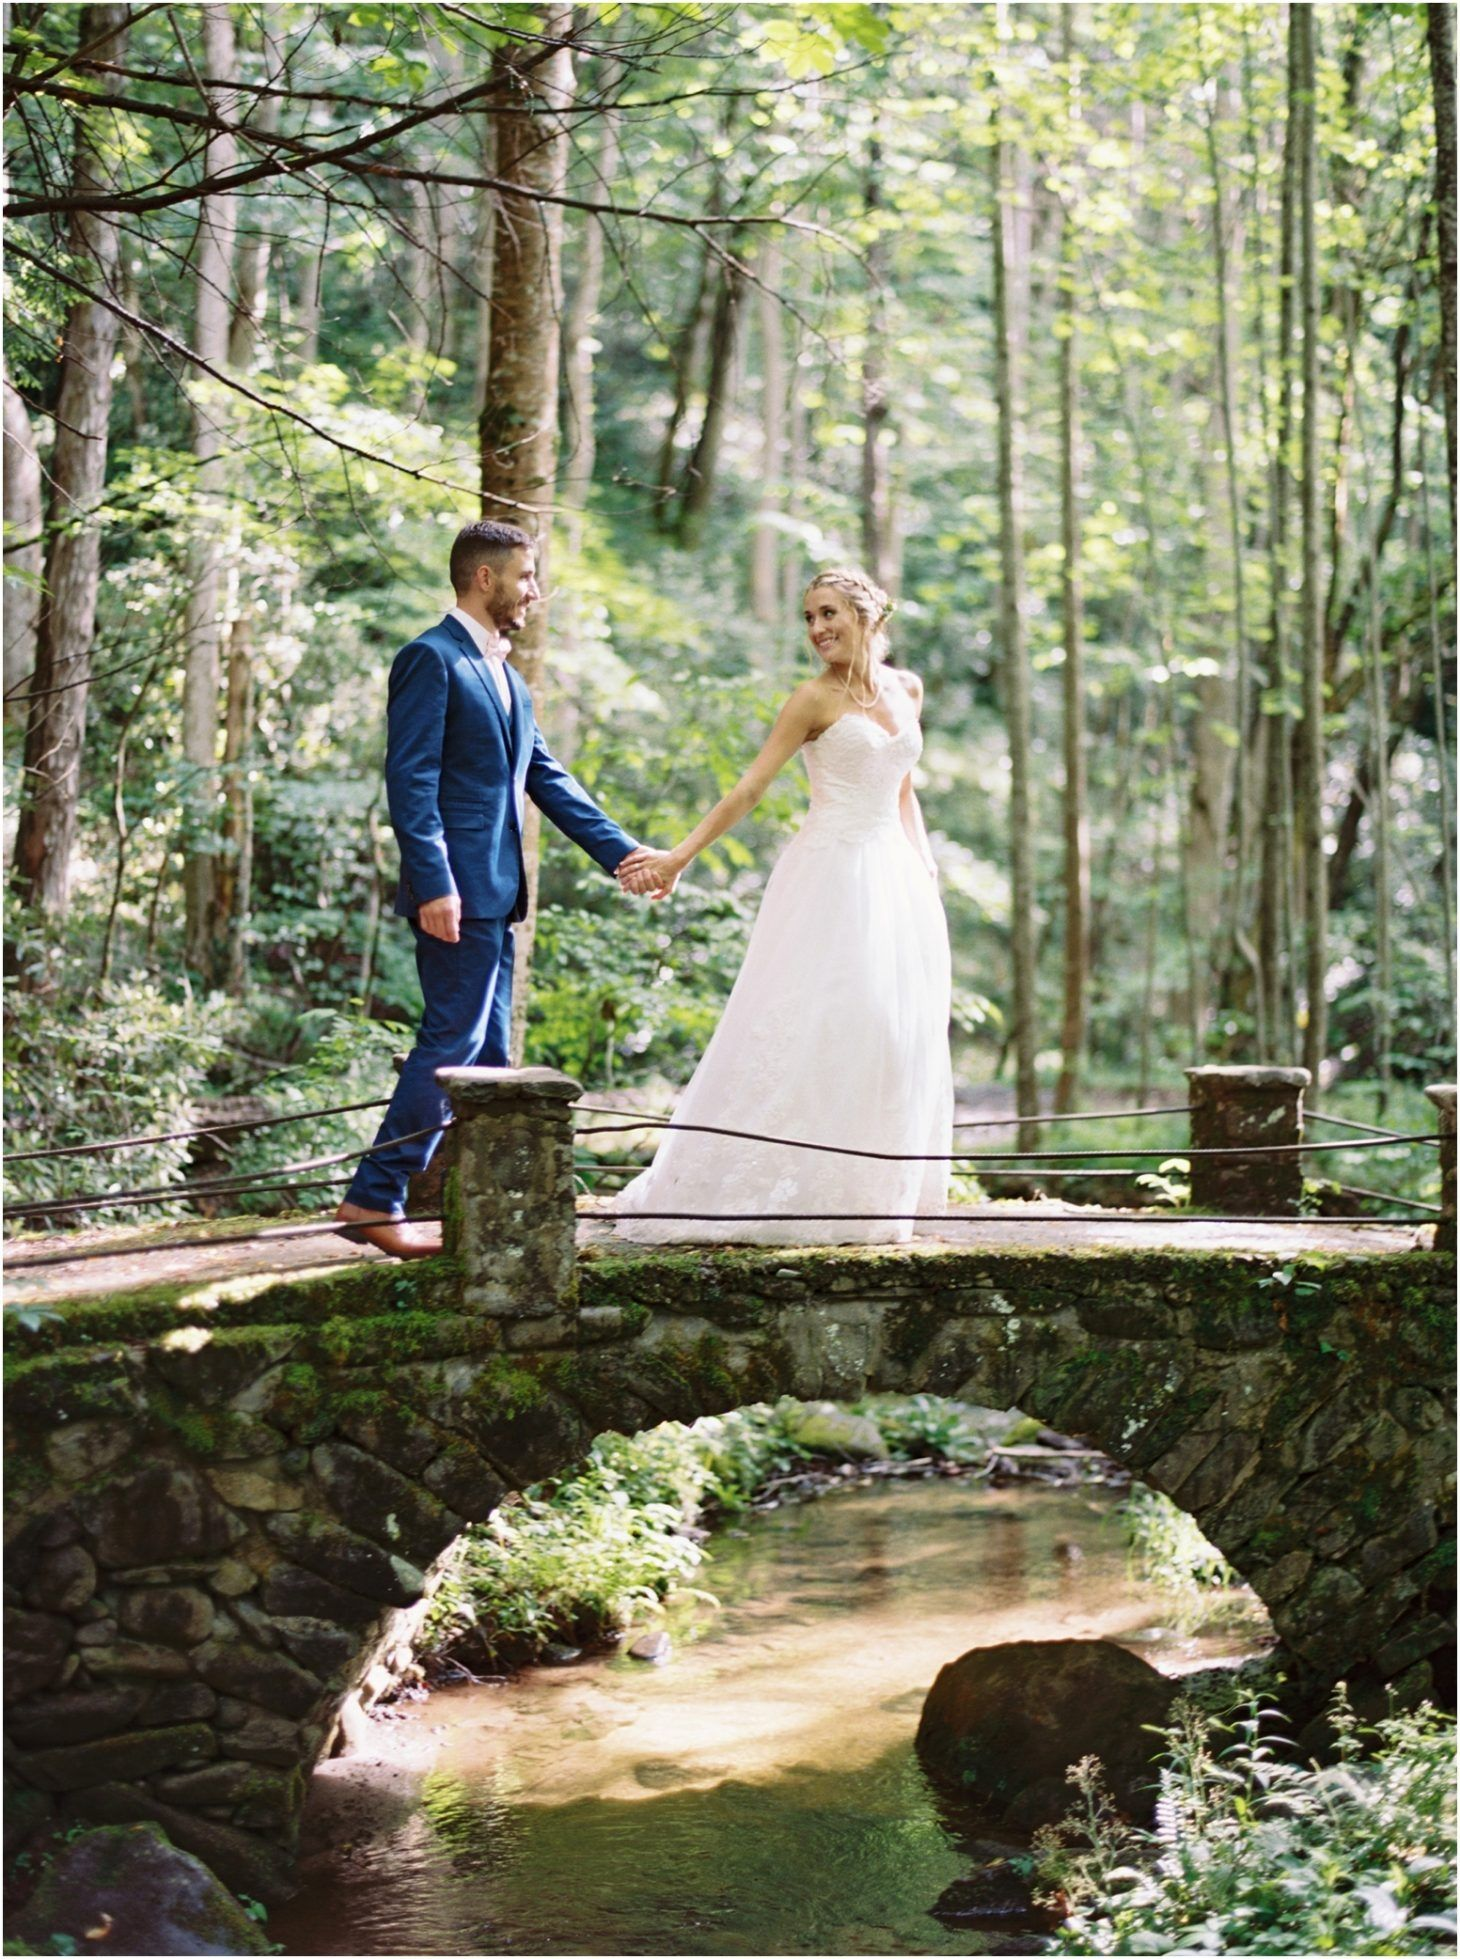 Wedding In The Great Smoky Mountains National Park At